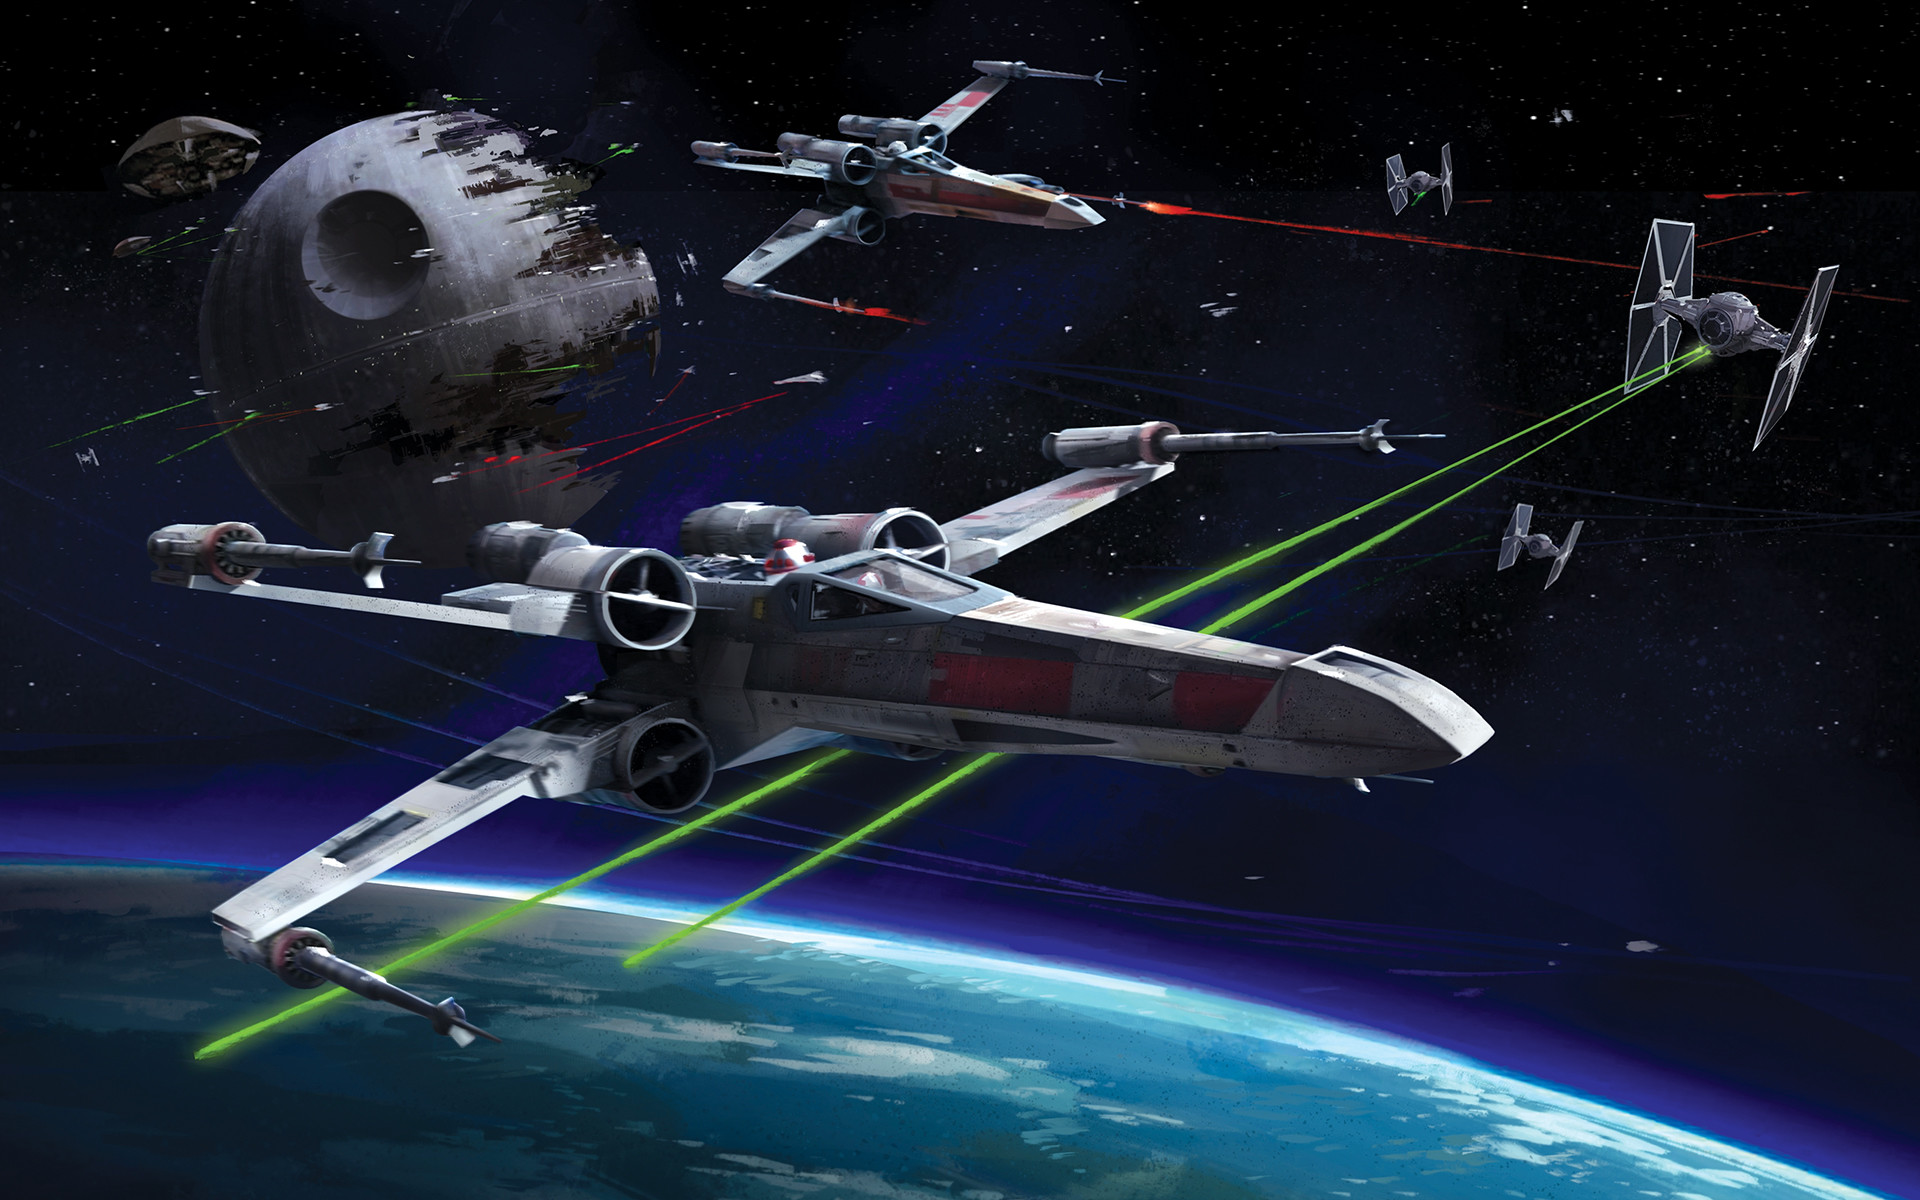 1920x1200 star-wars-x-wing-vs-tie-fighter-hd-wallpaper